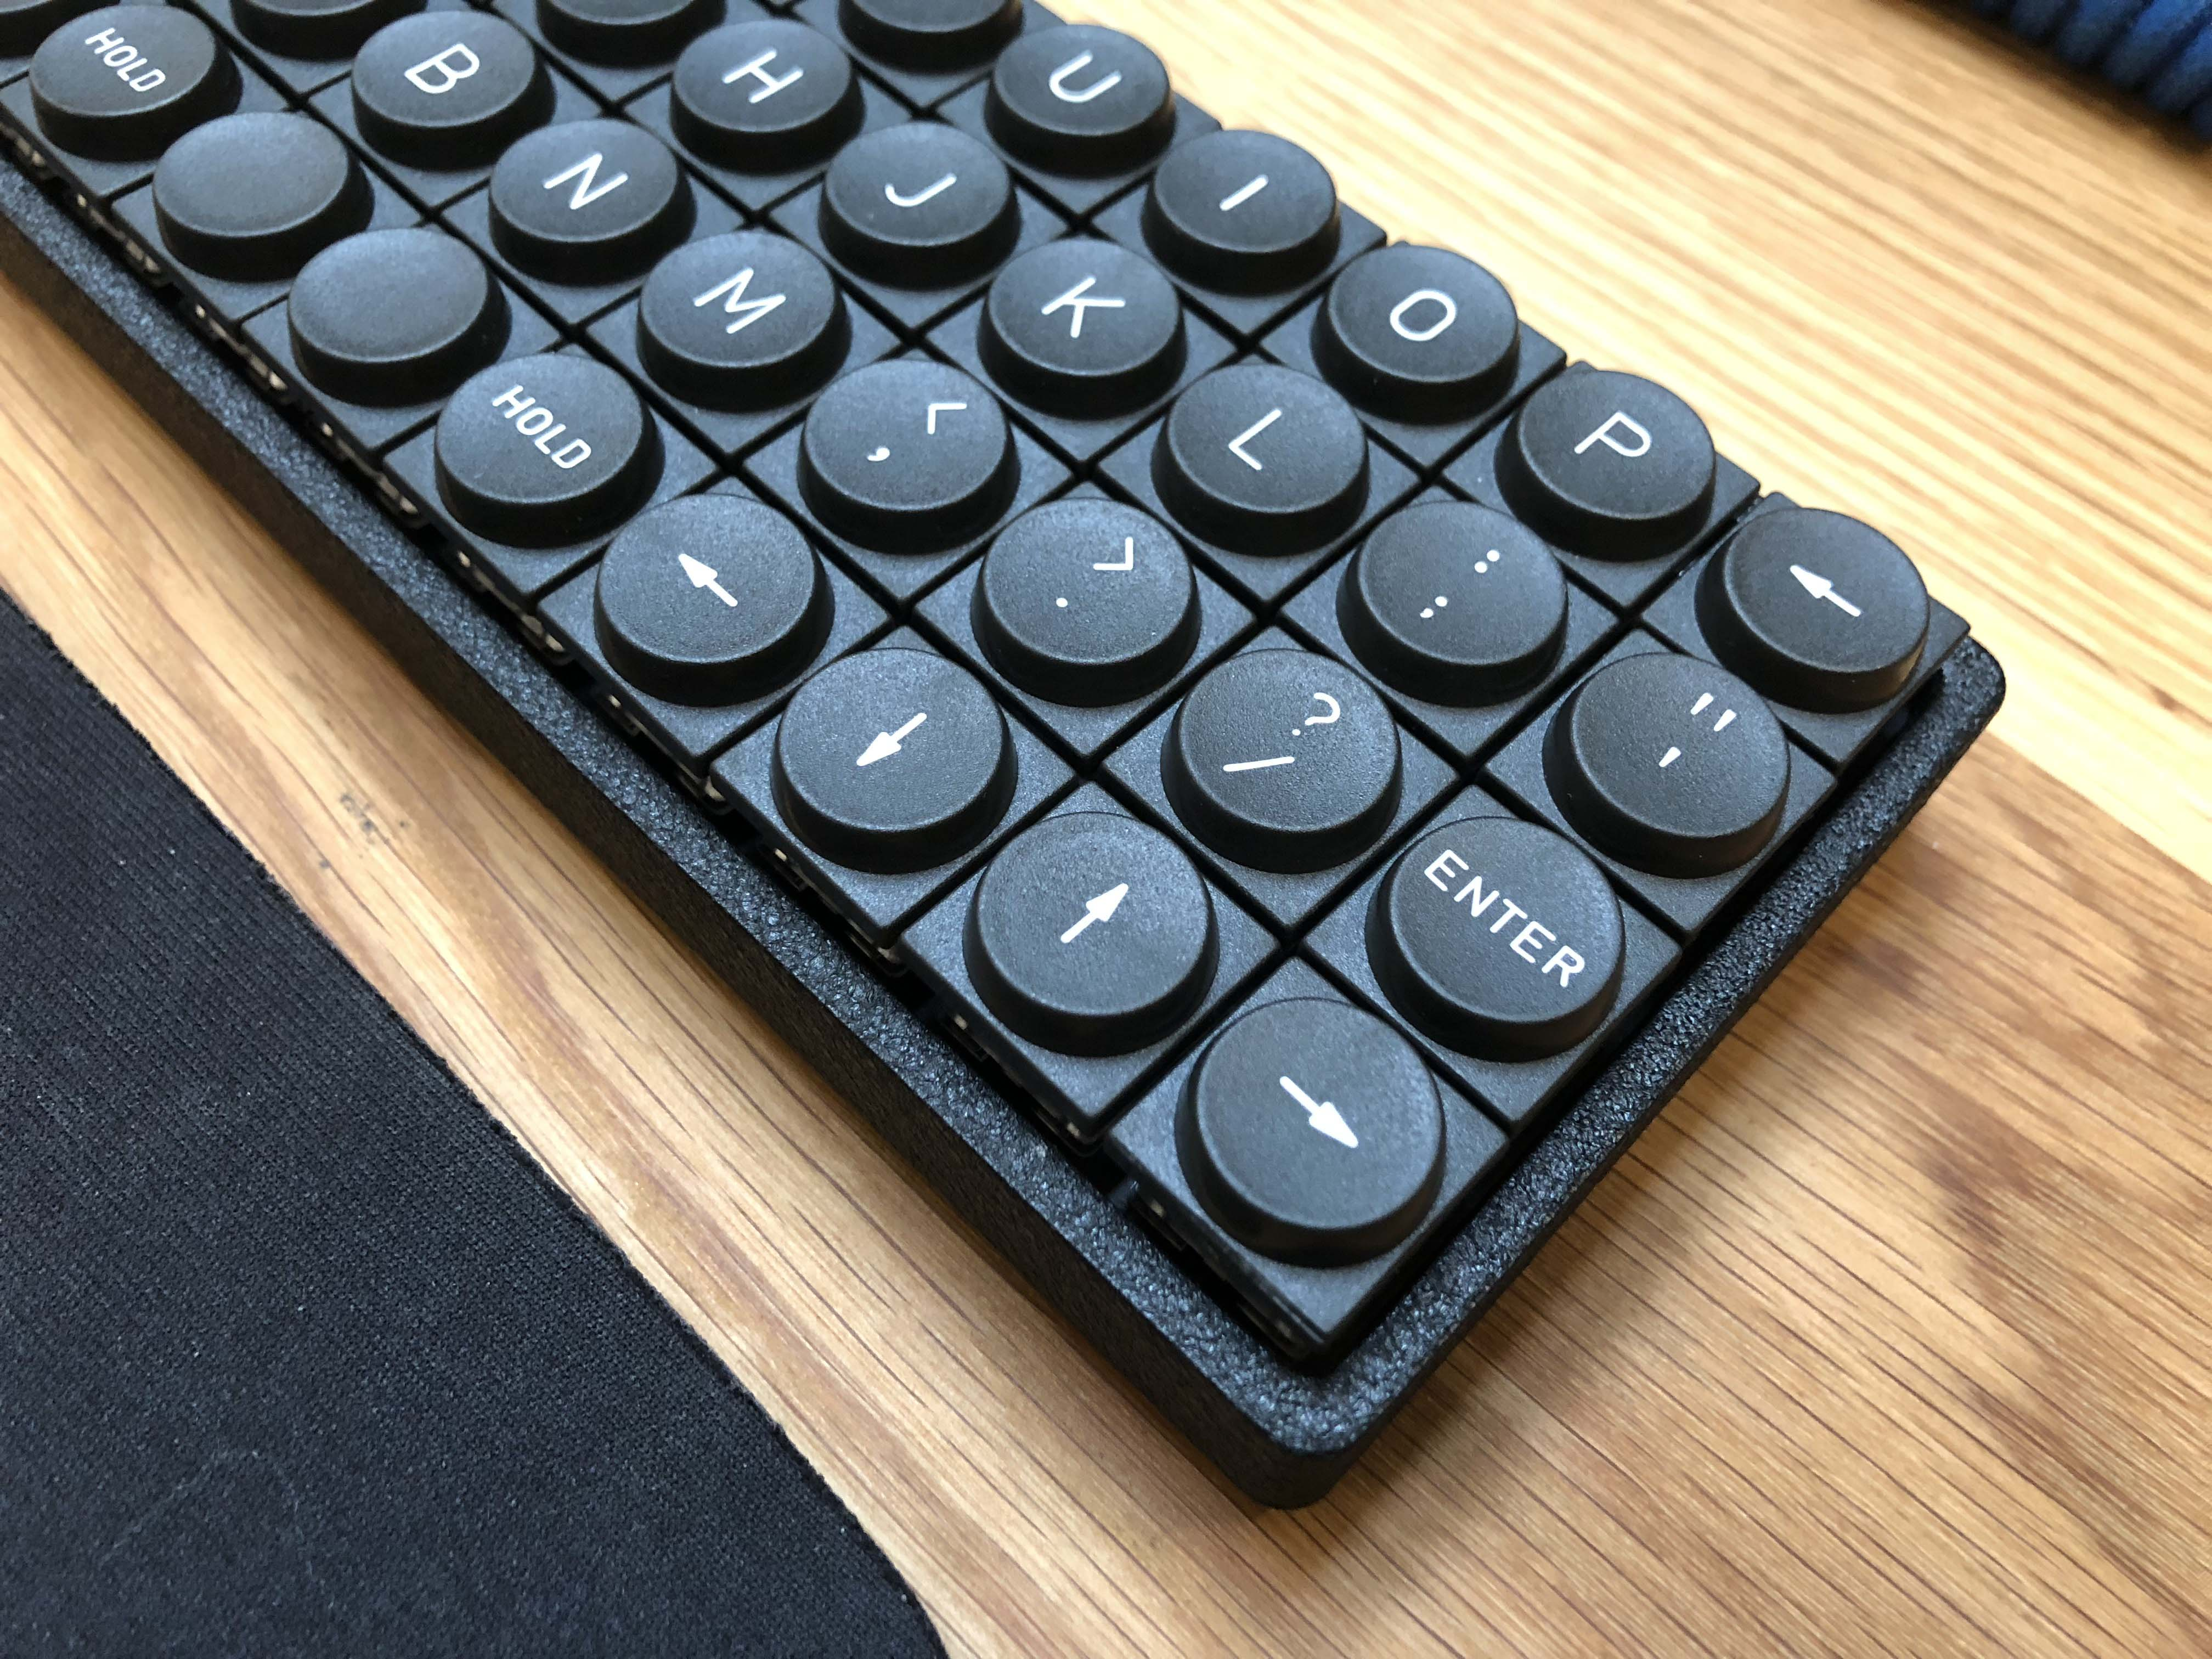 planck keyboard TeleType Z-Series delvin ortholinear round keys small keyboard